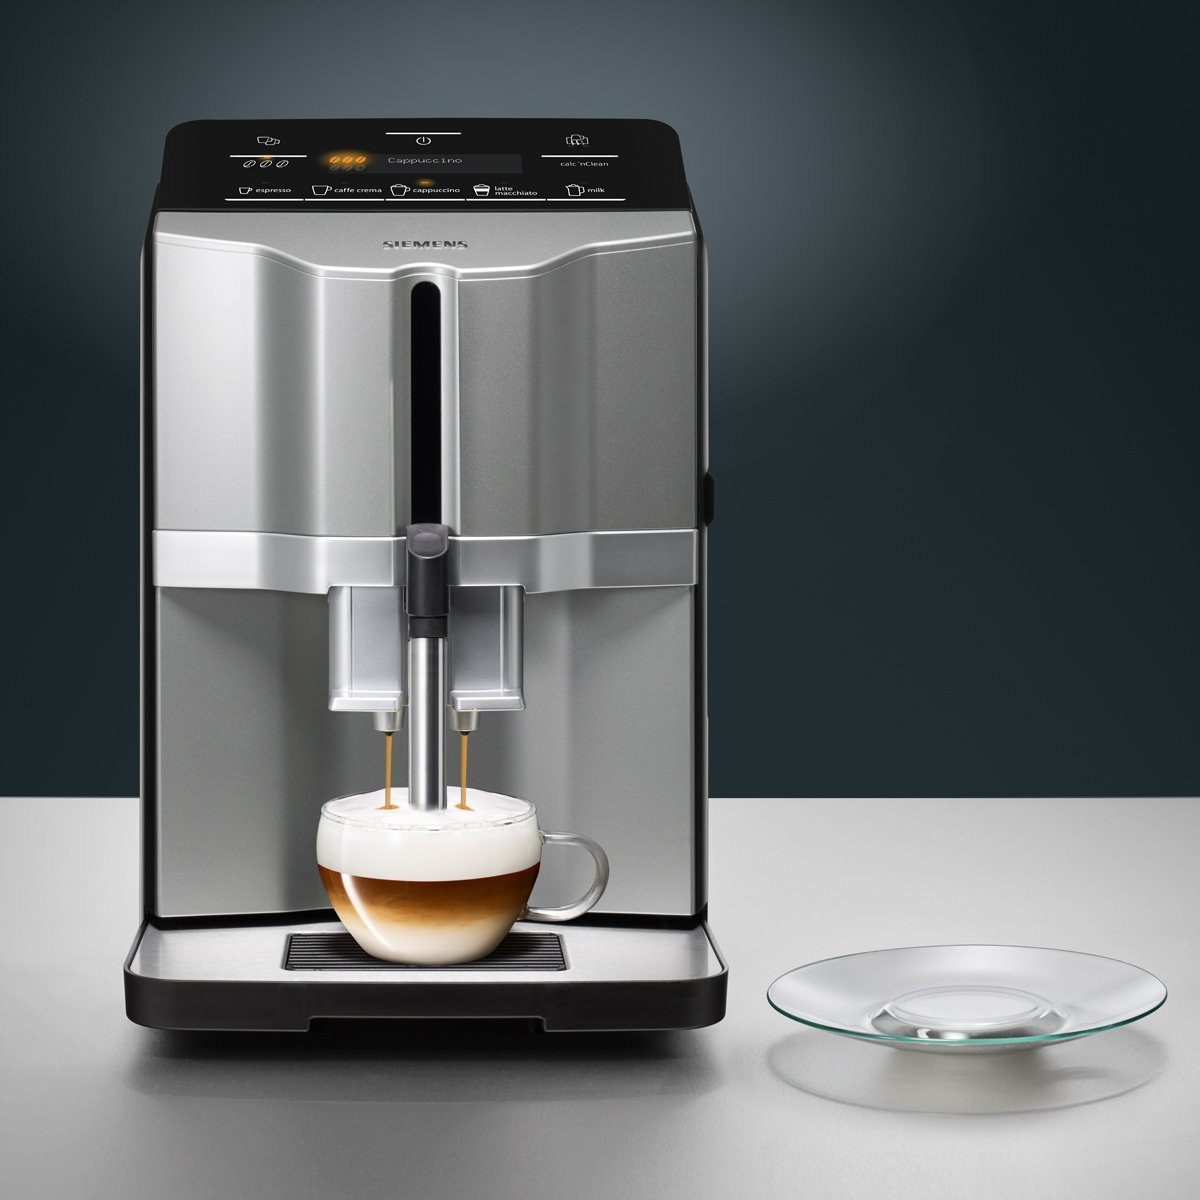 siemens eq 3 s300 test aroma kaffeevollautomat. Black Bedroom Furniture Sets. Home Design Ideas